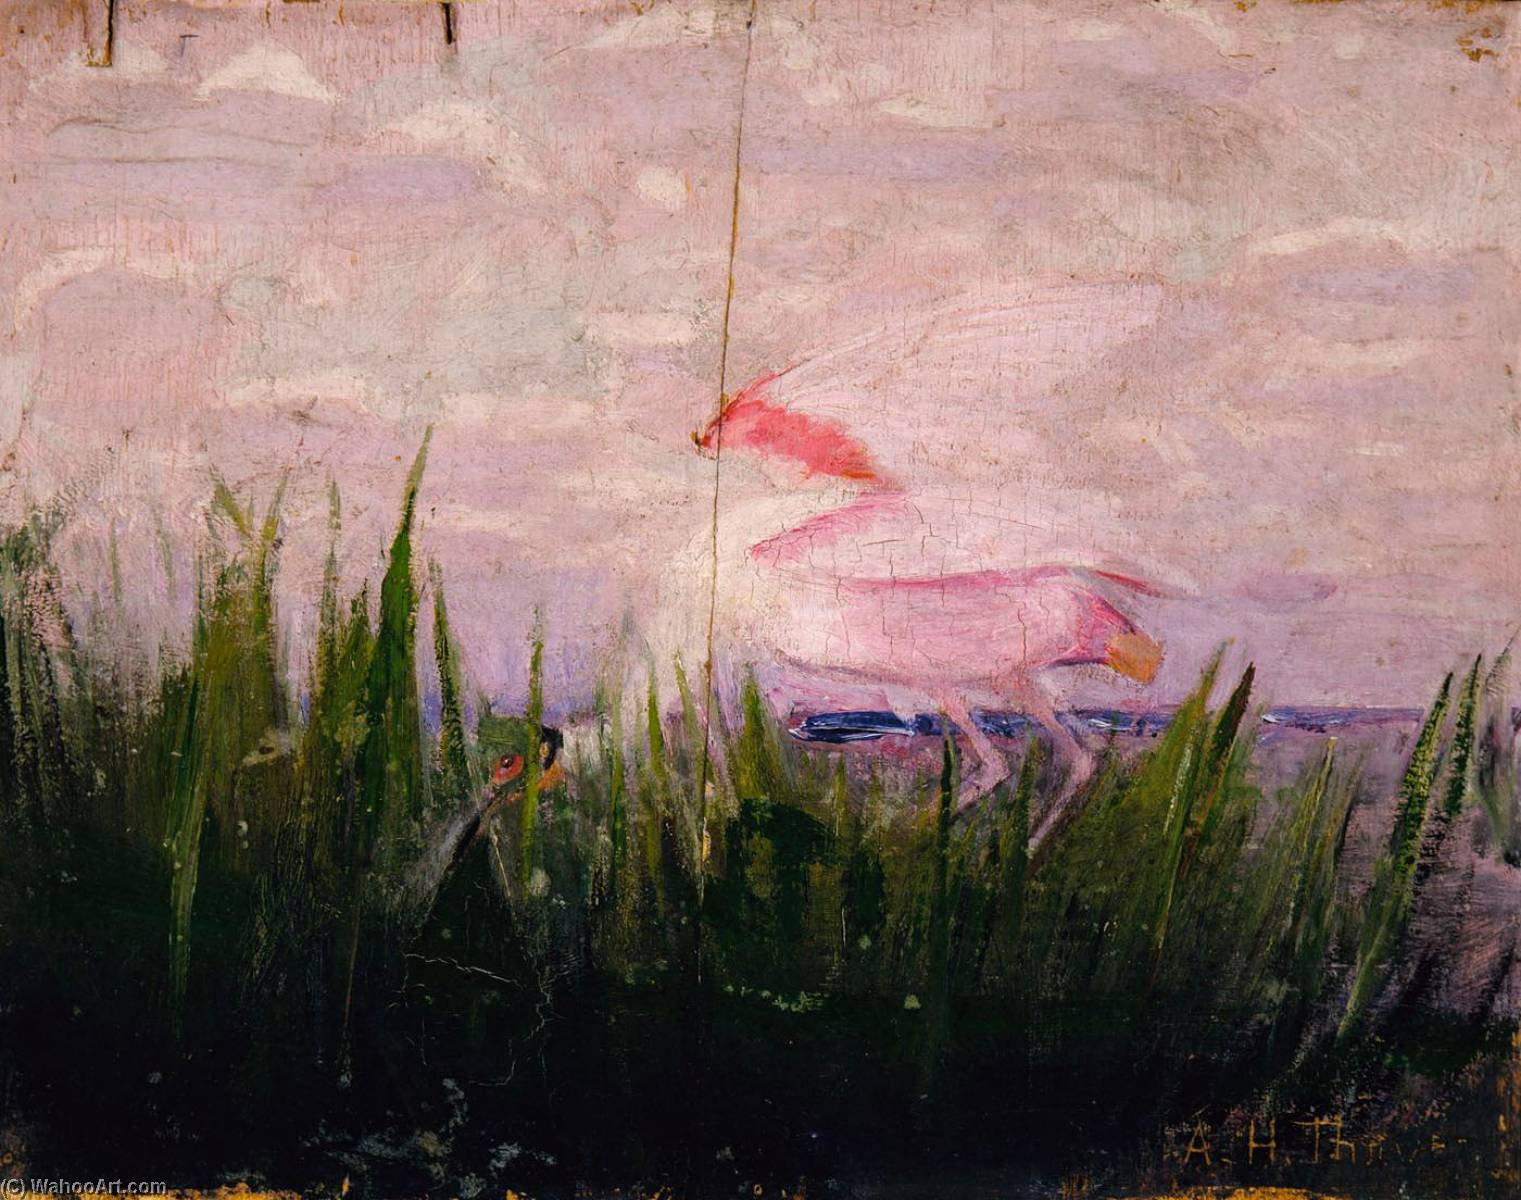 roseate spoonbill , 以下のための研究 本 隠します 着色 教会に 動物 王国, 原油 バイ Abbott Handerson Thayer (1849-1921, United States)